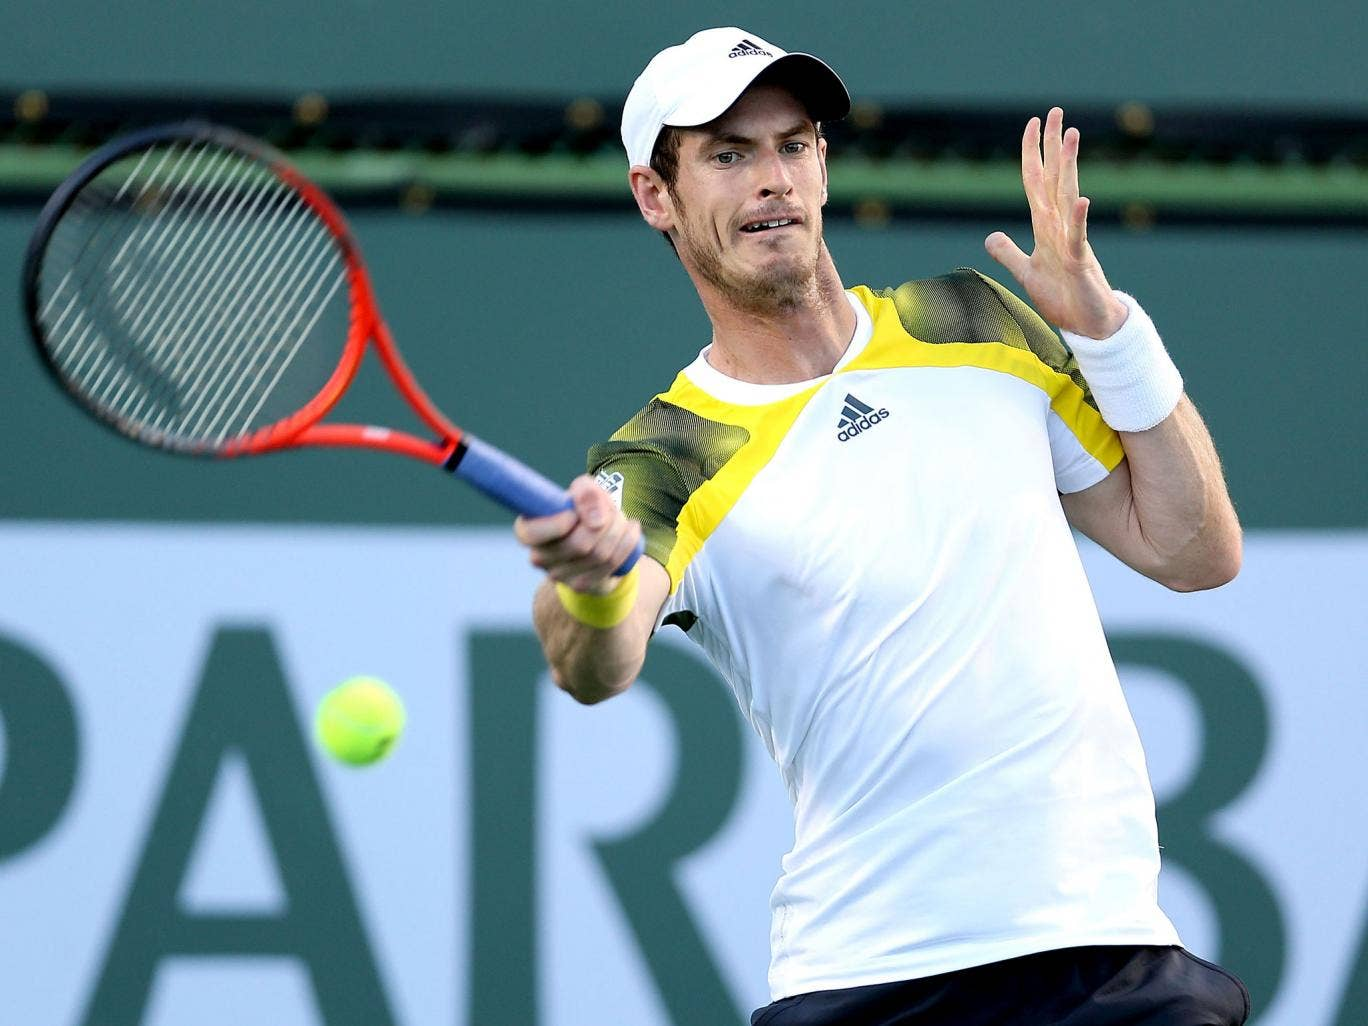 Andy Murray is through to the quarter-finals of the BNP Paribas Open